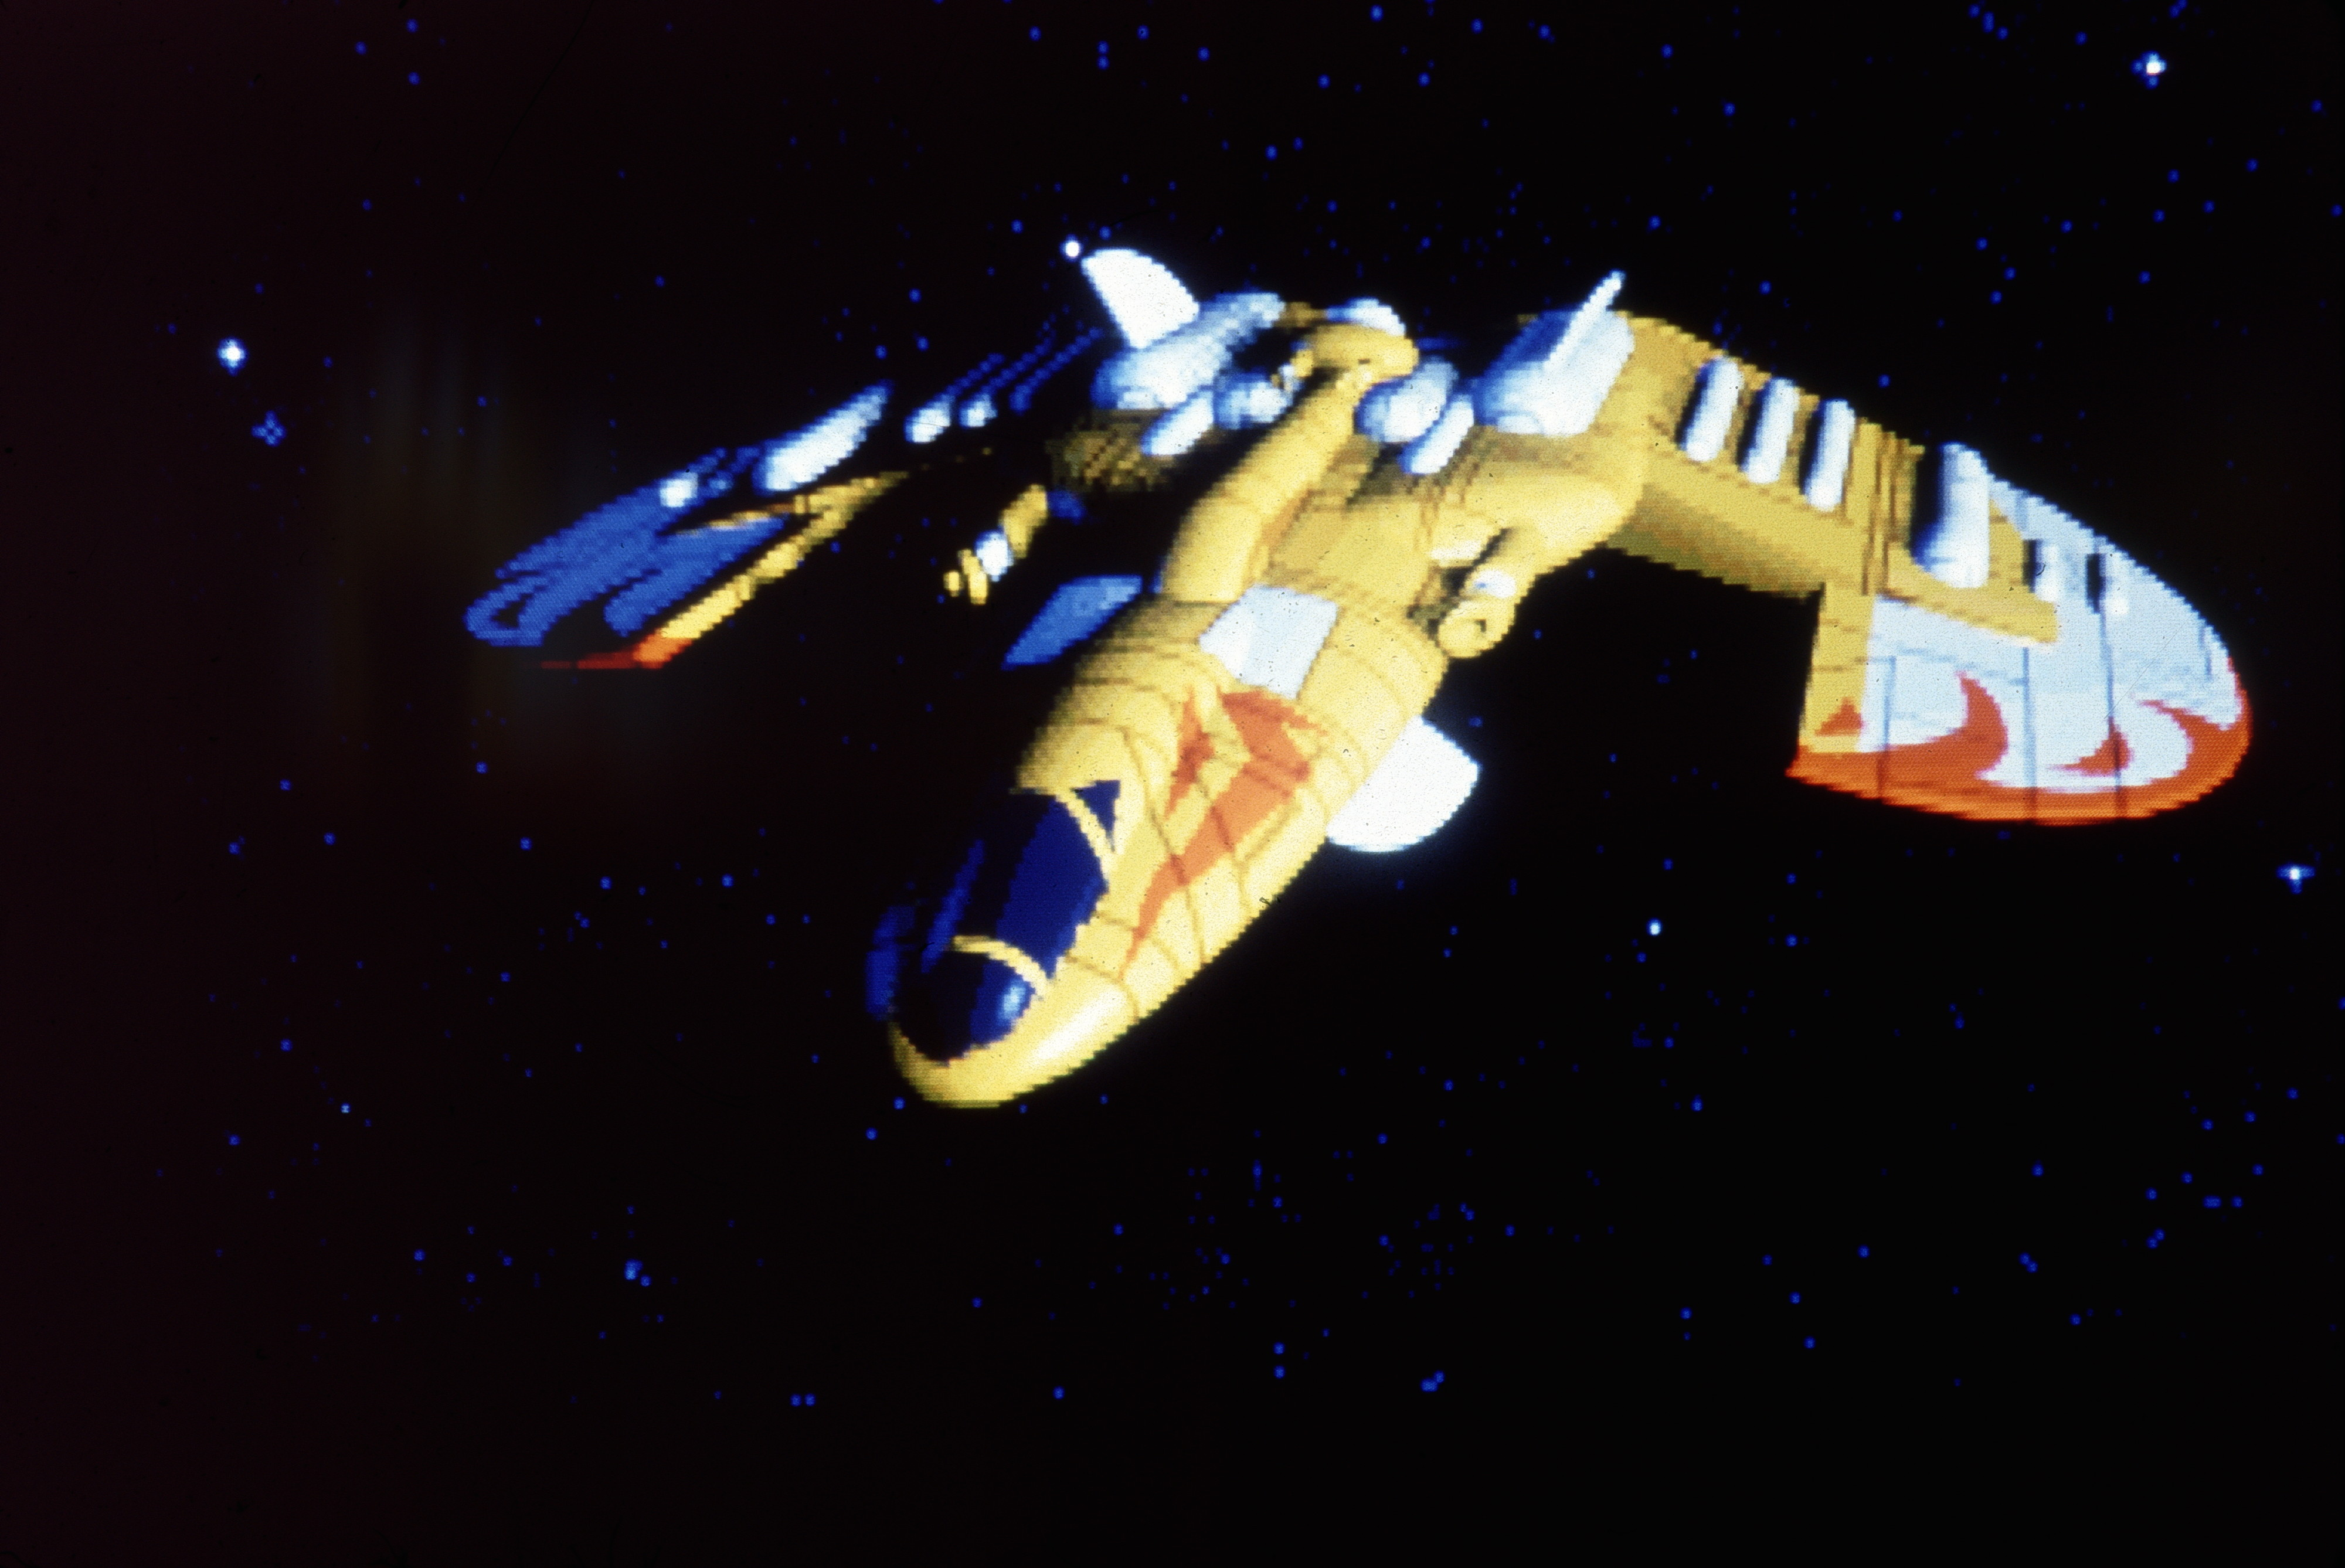 Wing commander cic ships of wing commander arena for Wing commander